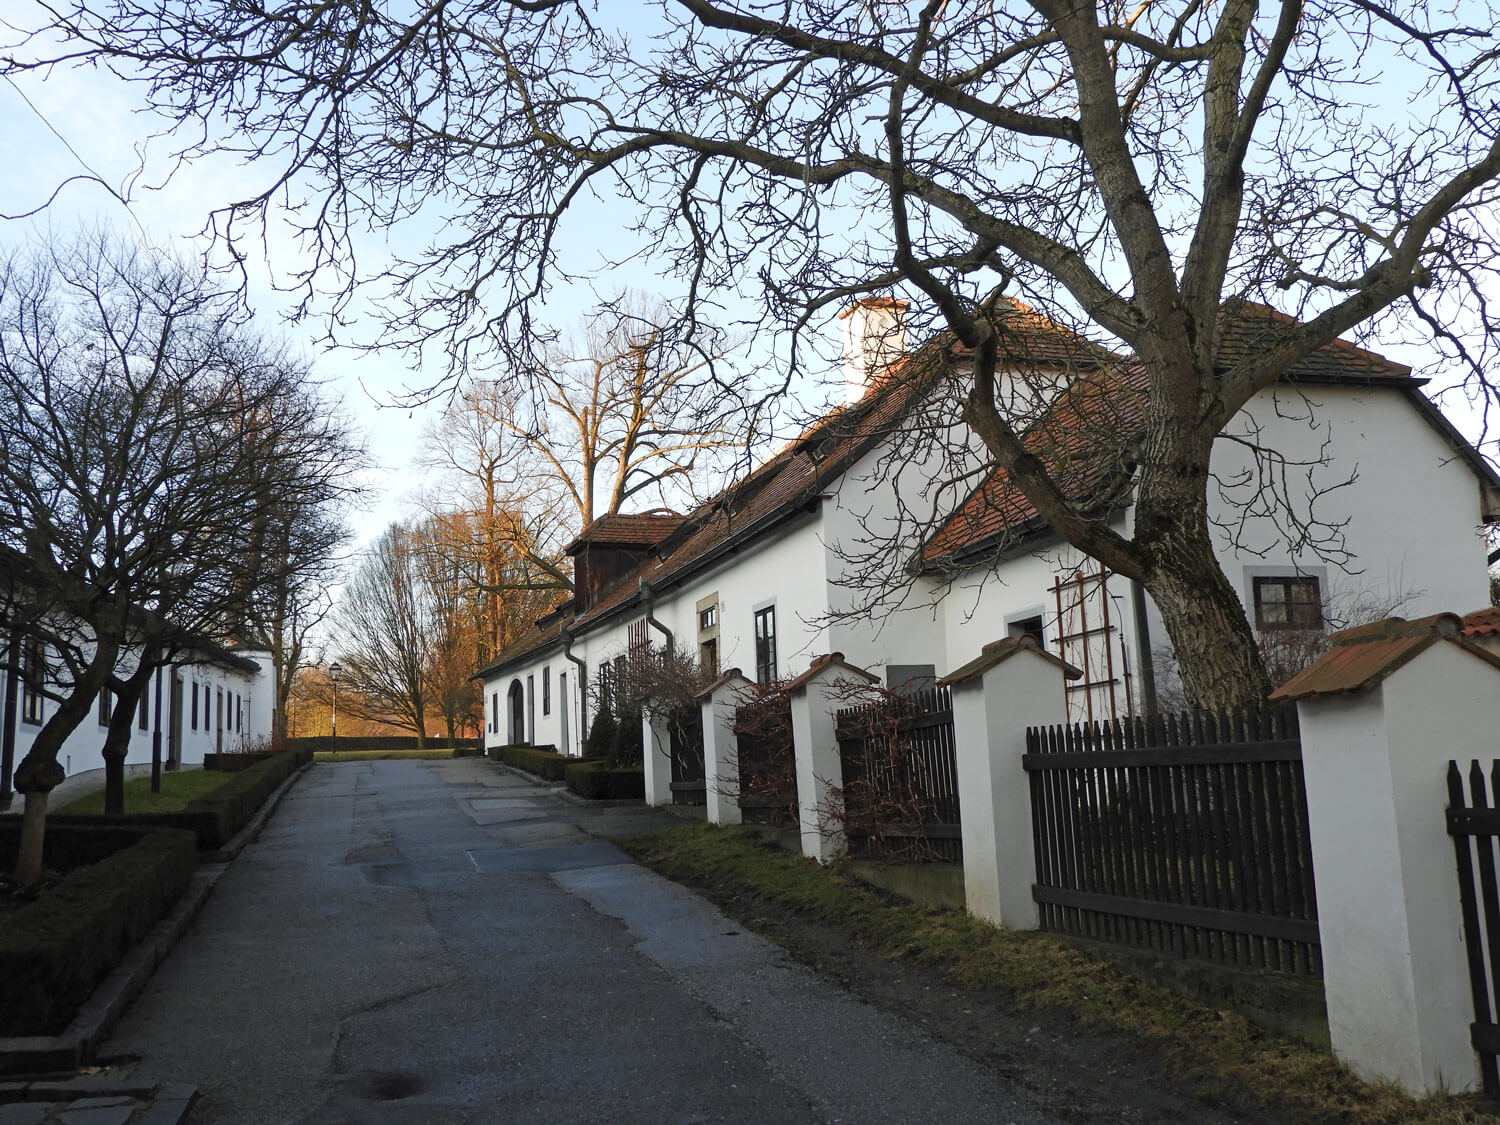 czech-cesky-cottage-street-white-house.jpg